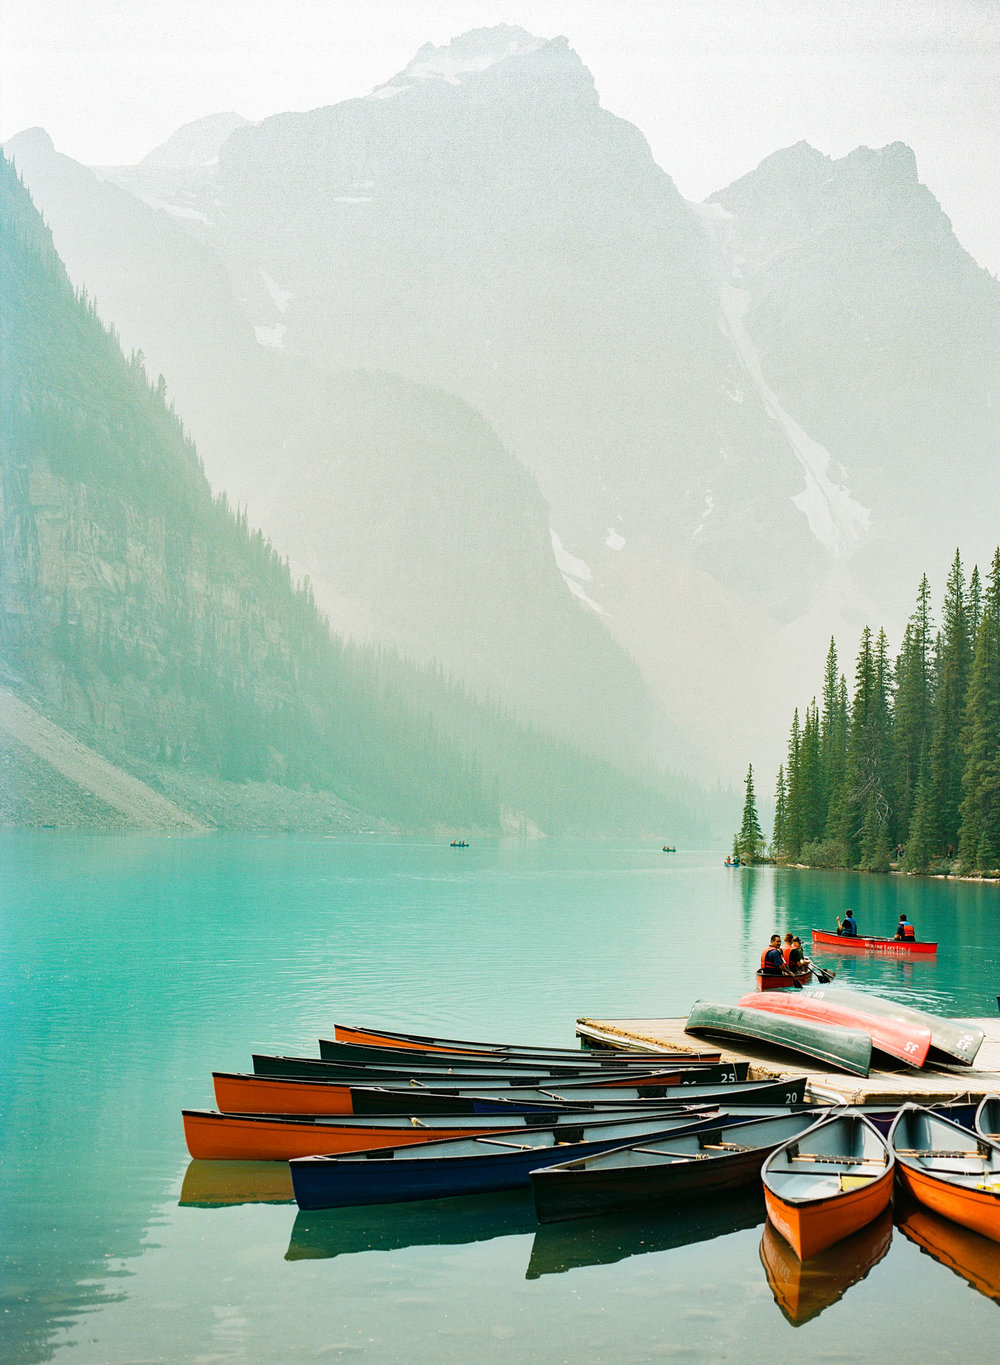 banff-canada-film-photography-travel-images